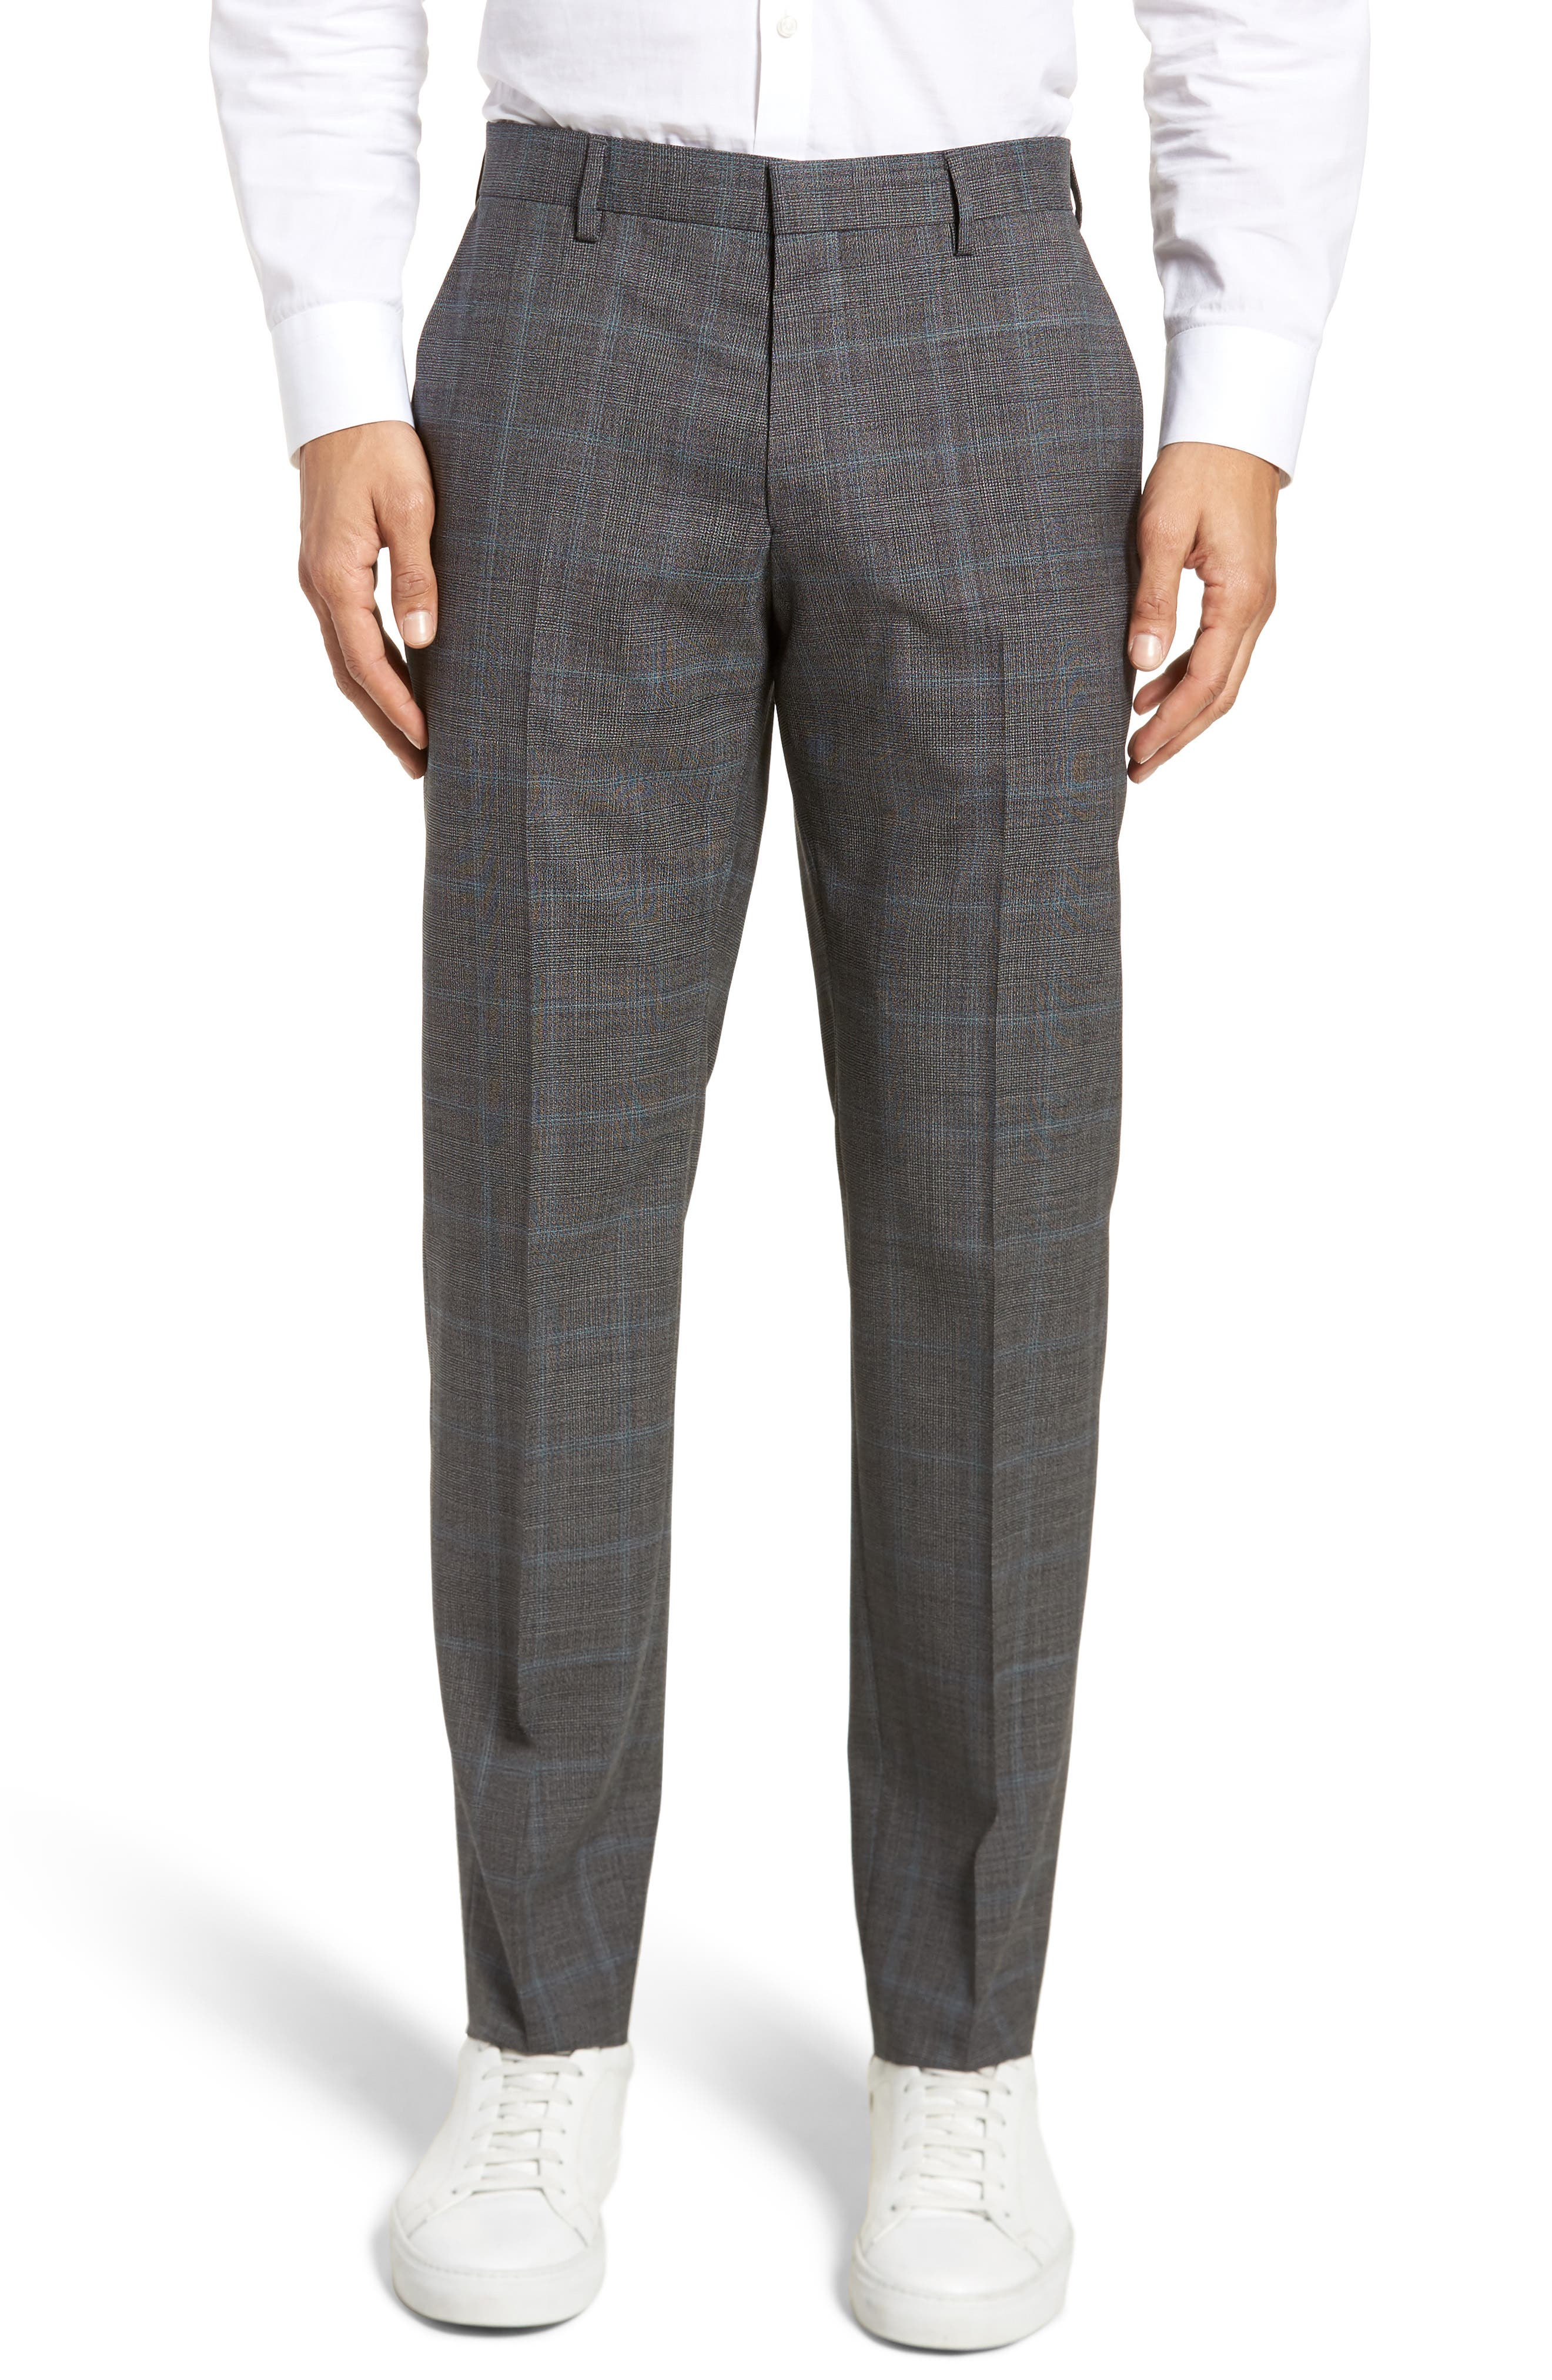 Genesis Flat Front Plaid Wool Trousers,                             Main thumbnail 1, color,                             Open Grey